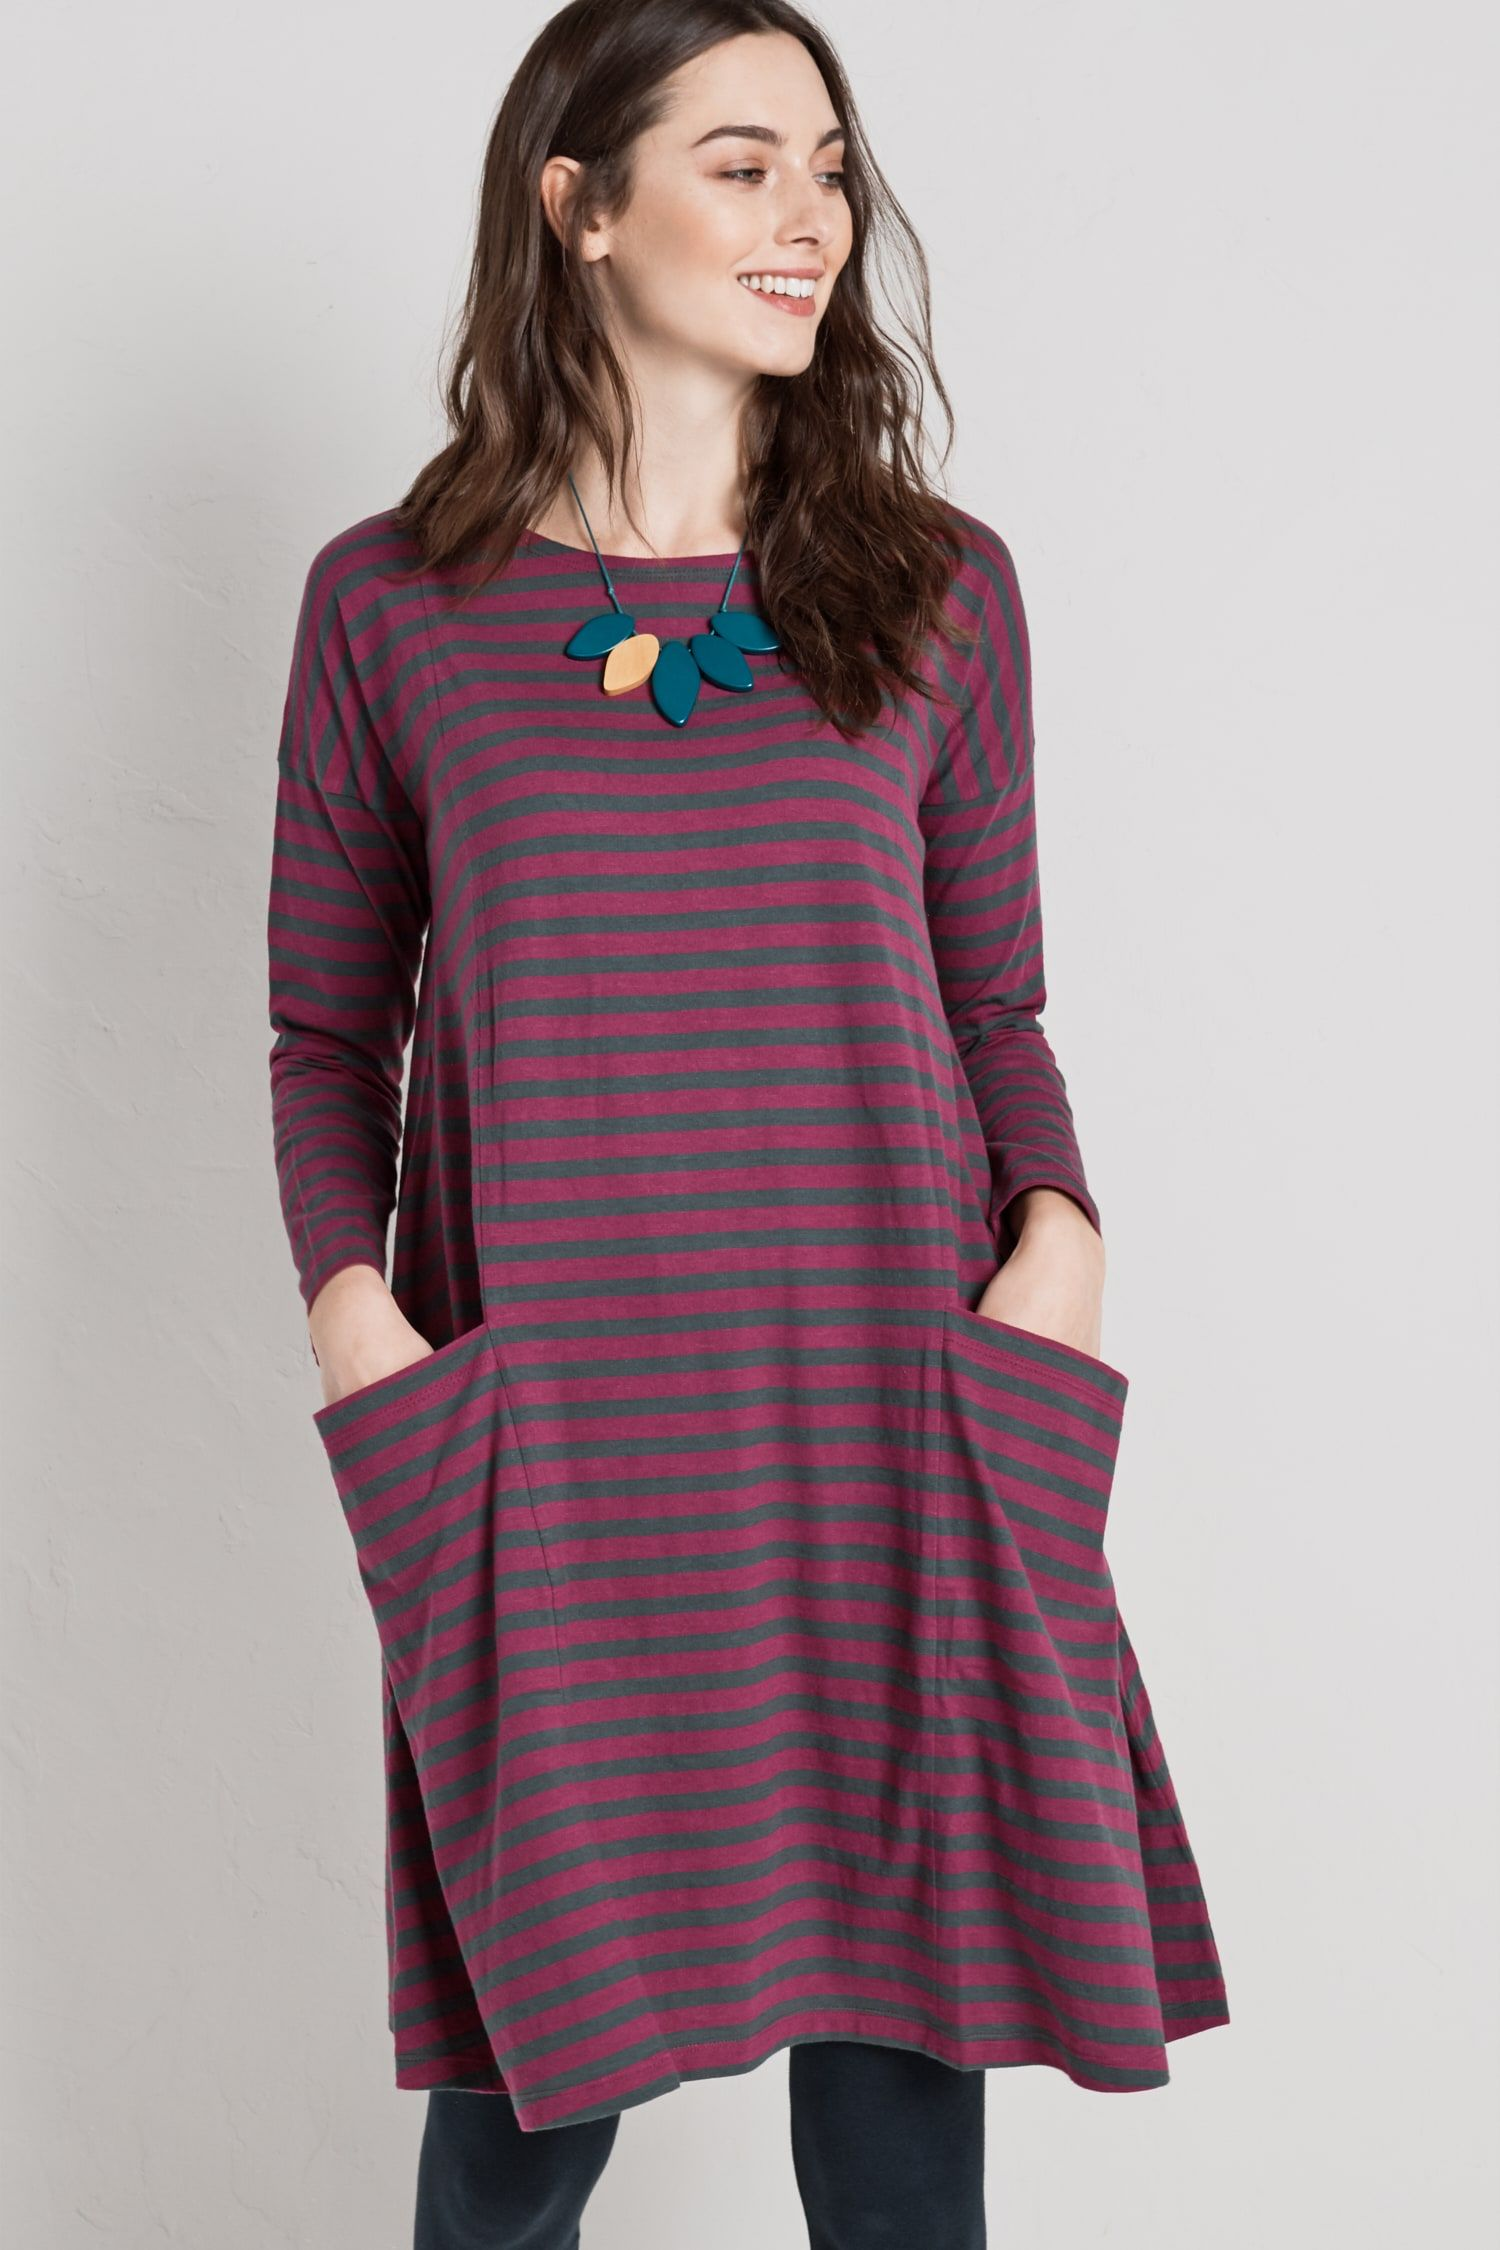 86a70802f4e2 Ladies  cotton swing dress in a choice of unique Seasalt prints. The Mill  Pool